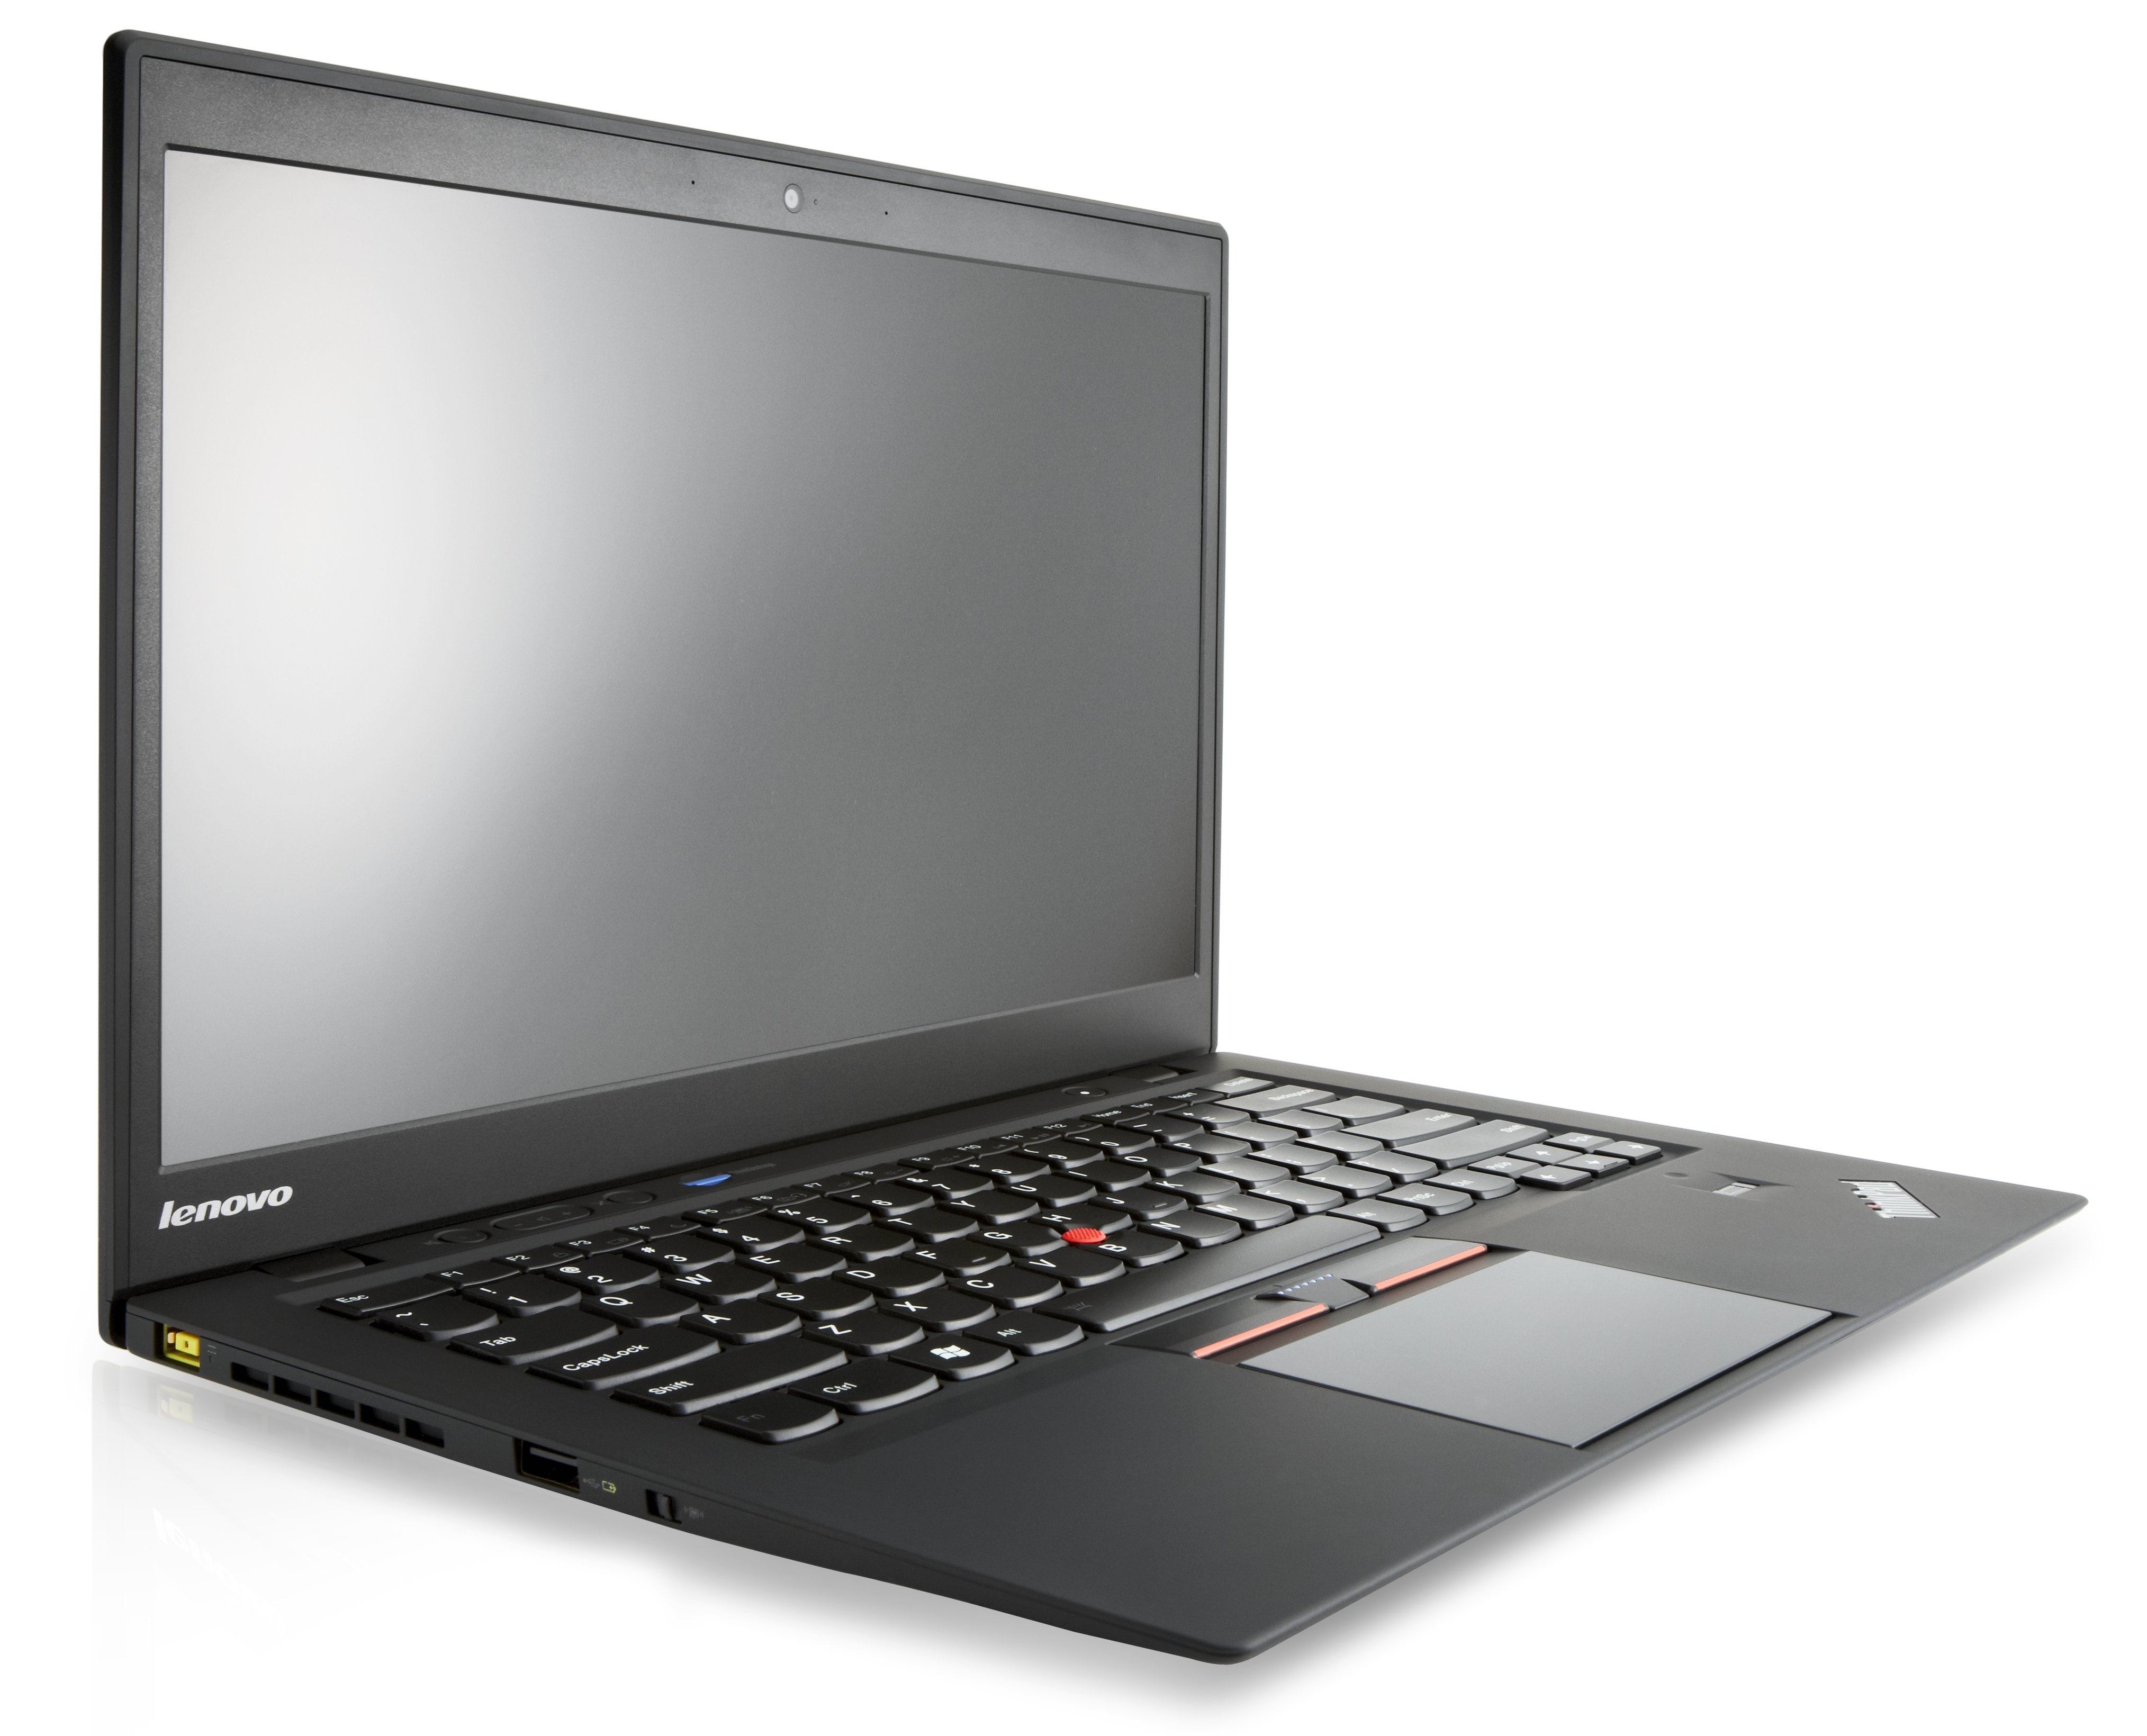 Lenovo ThinkPad X1 Carbon Ultrabook Review - NotebookCheck net Reviews